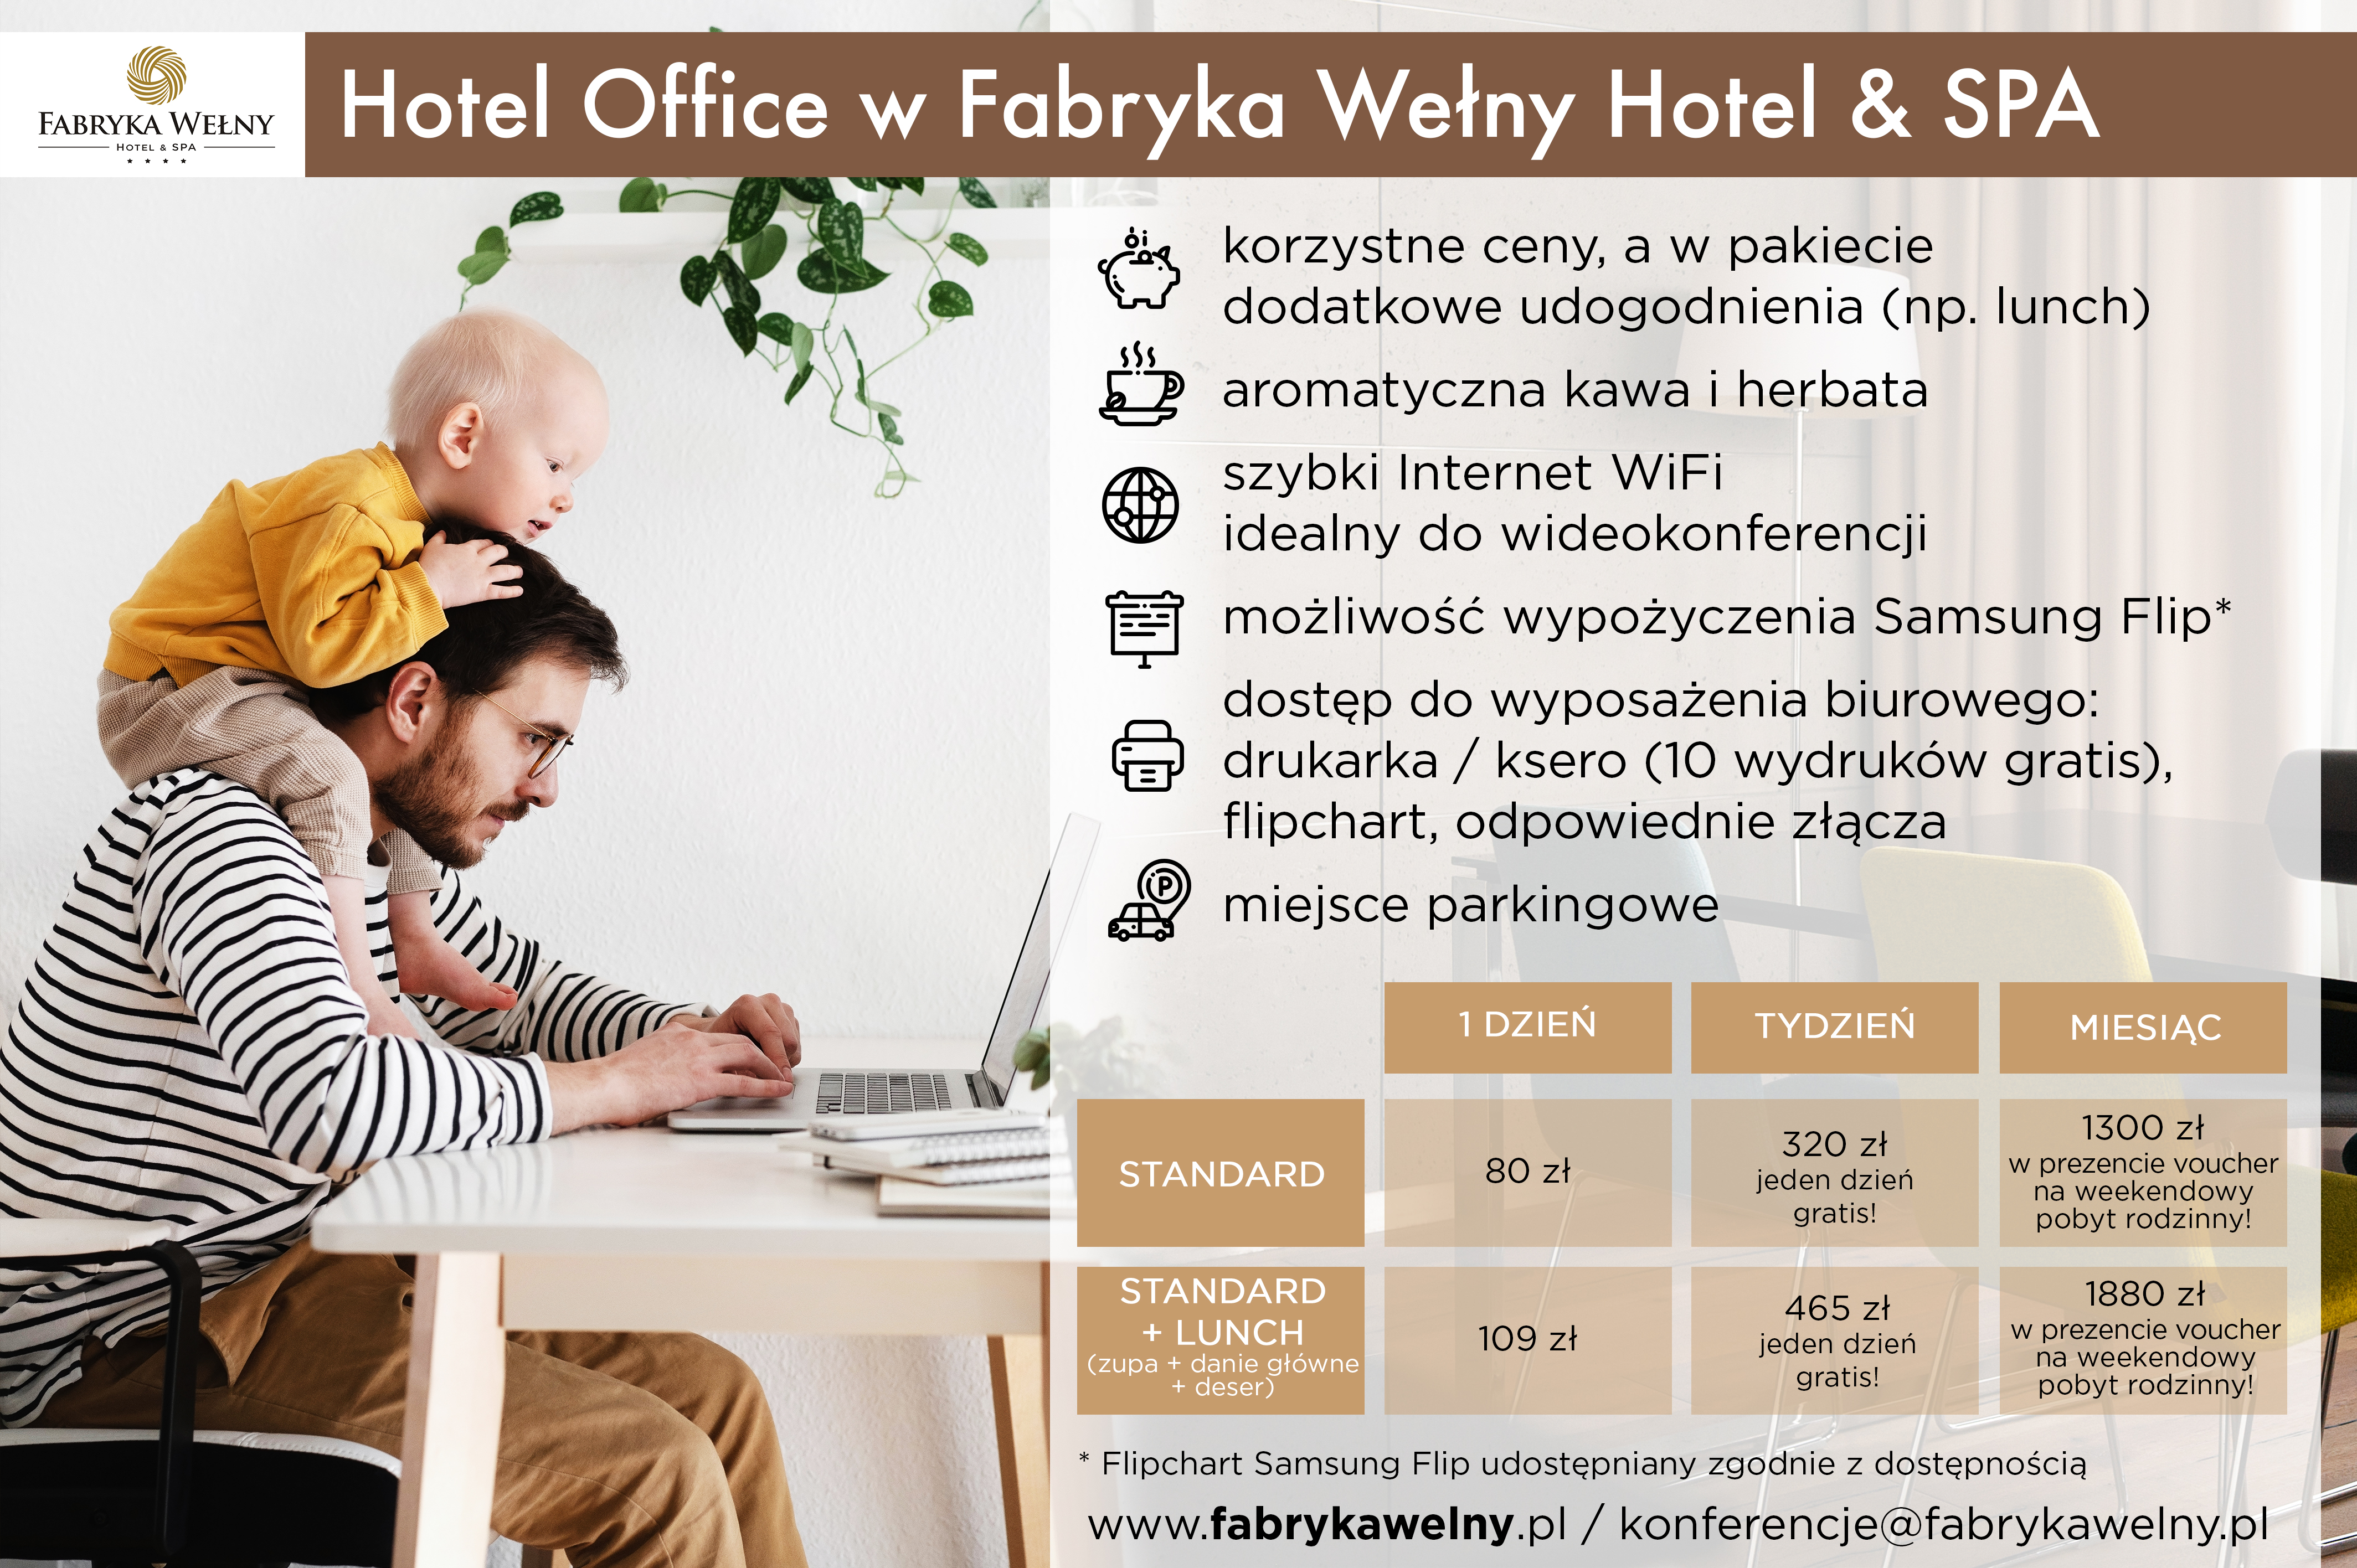 Conference Offer Fabryka Welny Hotel Spa